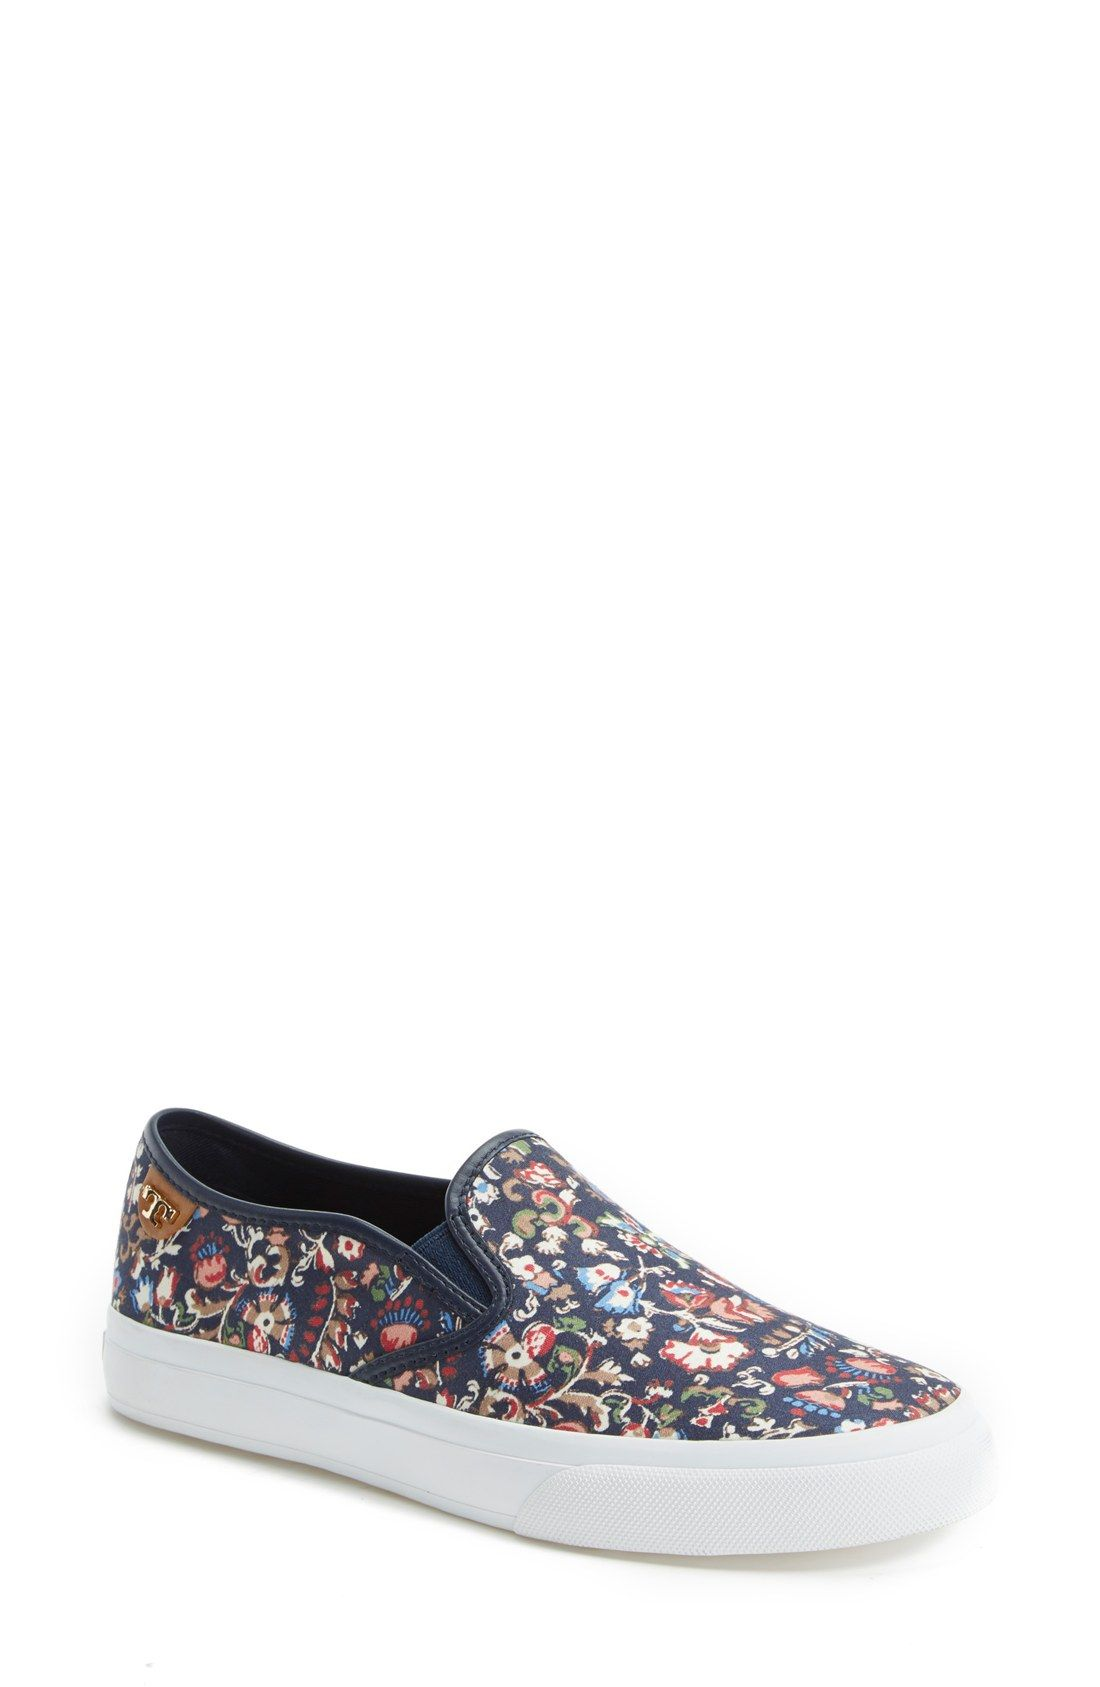 2bd232413ae These floral Tory Burch sneakers would look so cute paired with distressed  boyfriend jeans and a relaxed tee.